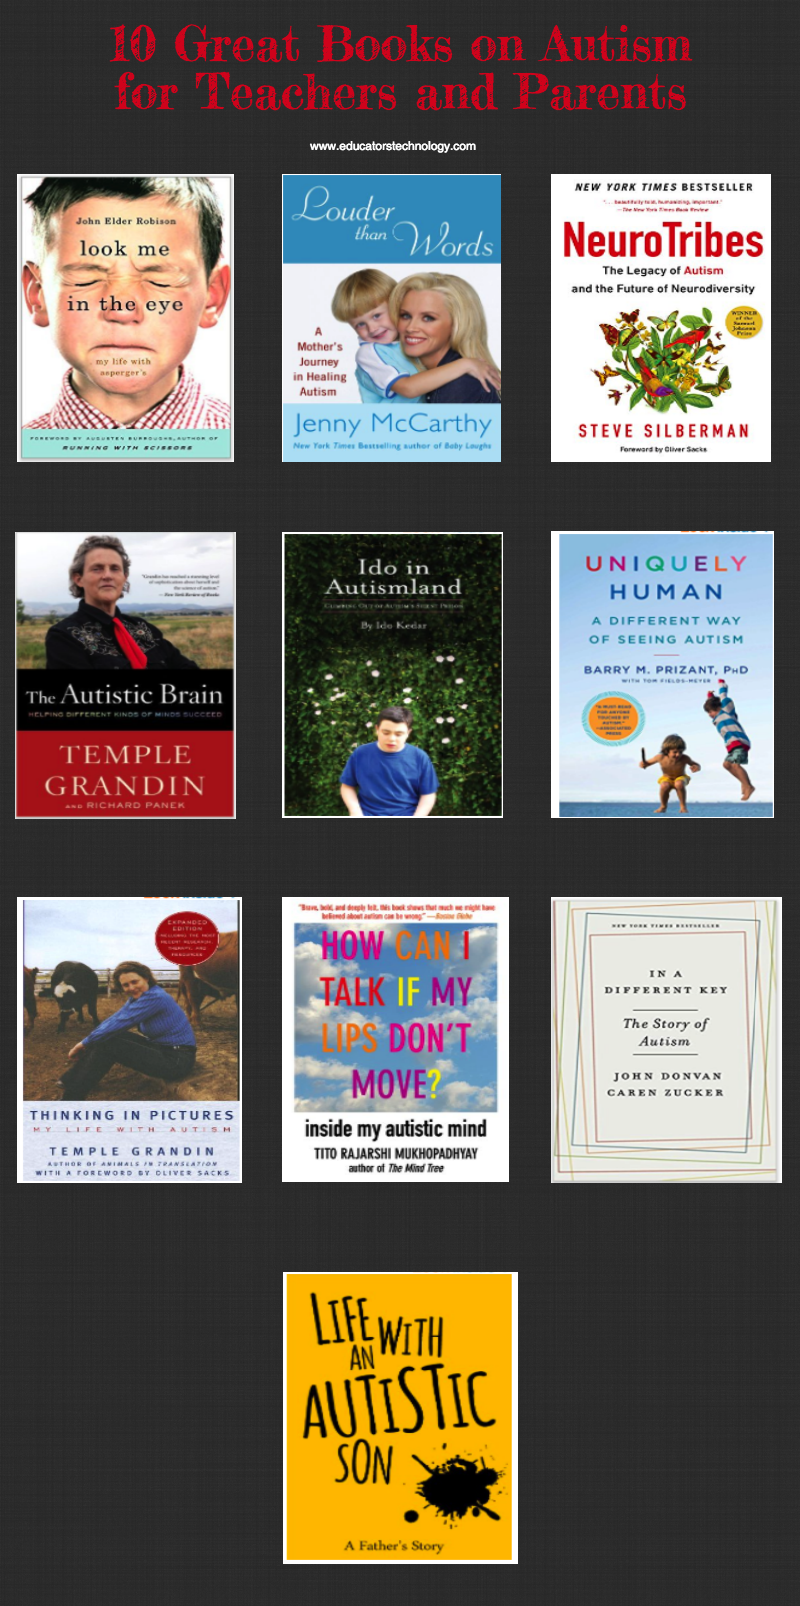 10 Great Books on Autism for Teachers and Parents